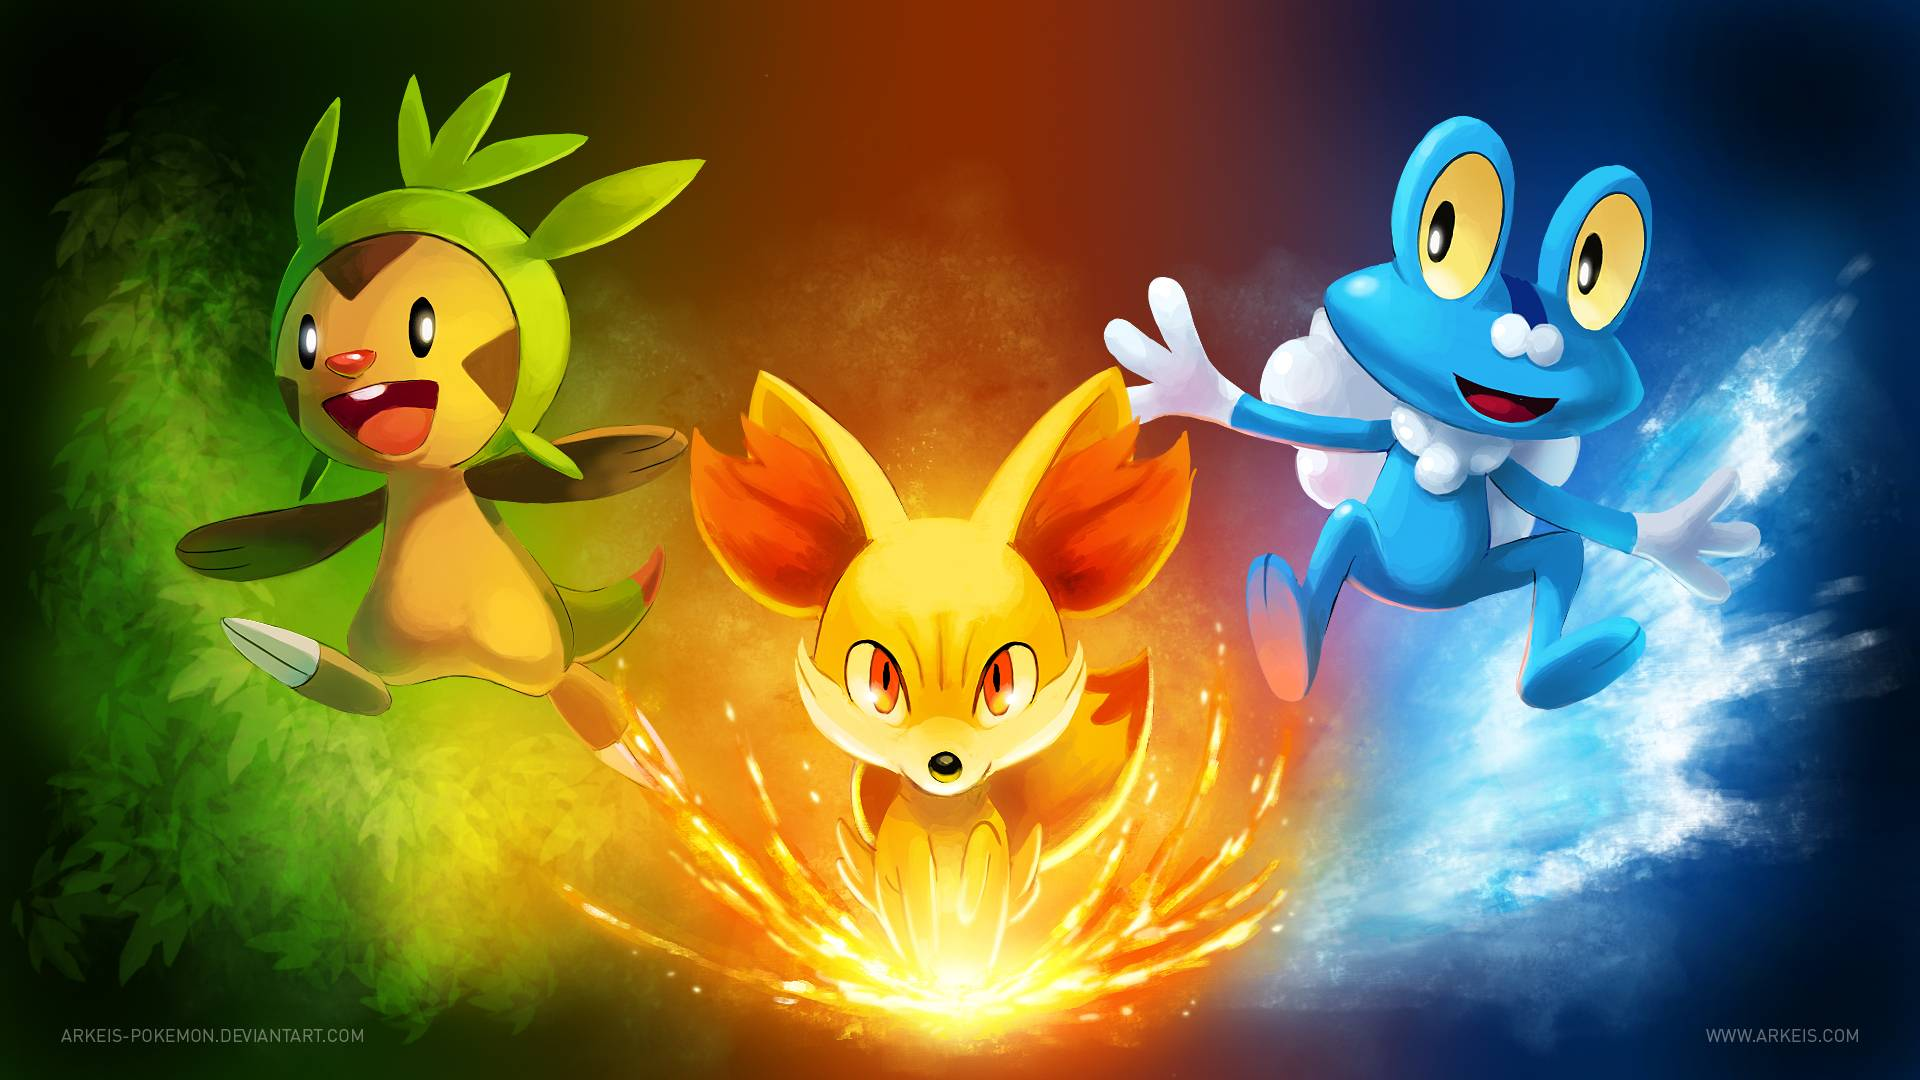 pokemon x and y hd wallpaper « GamingBolt.com: Video Game News .